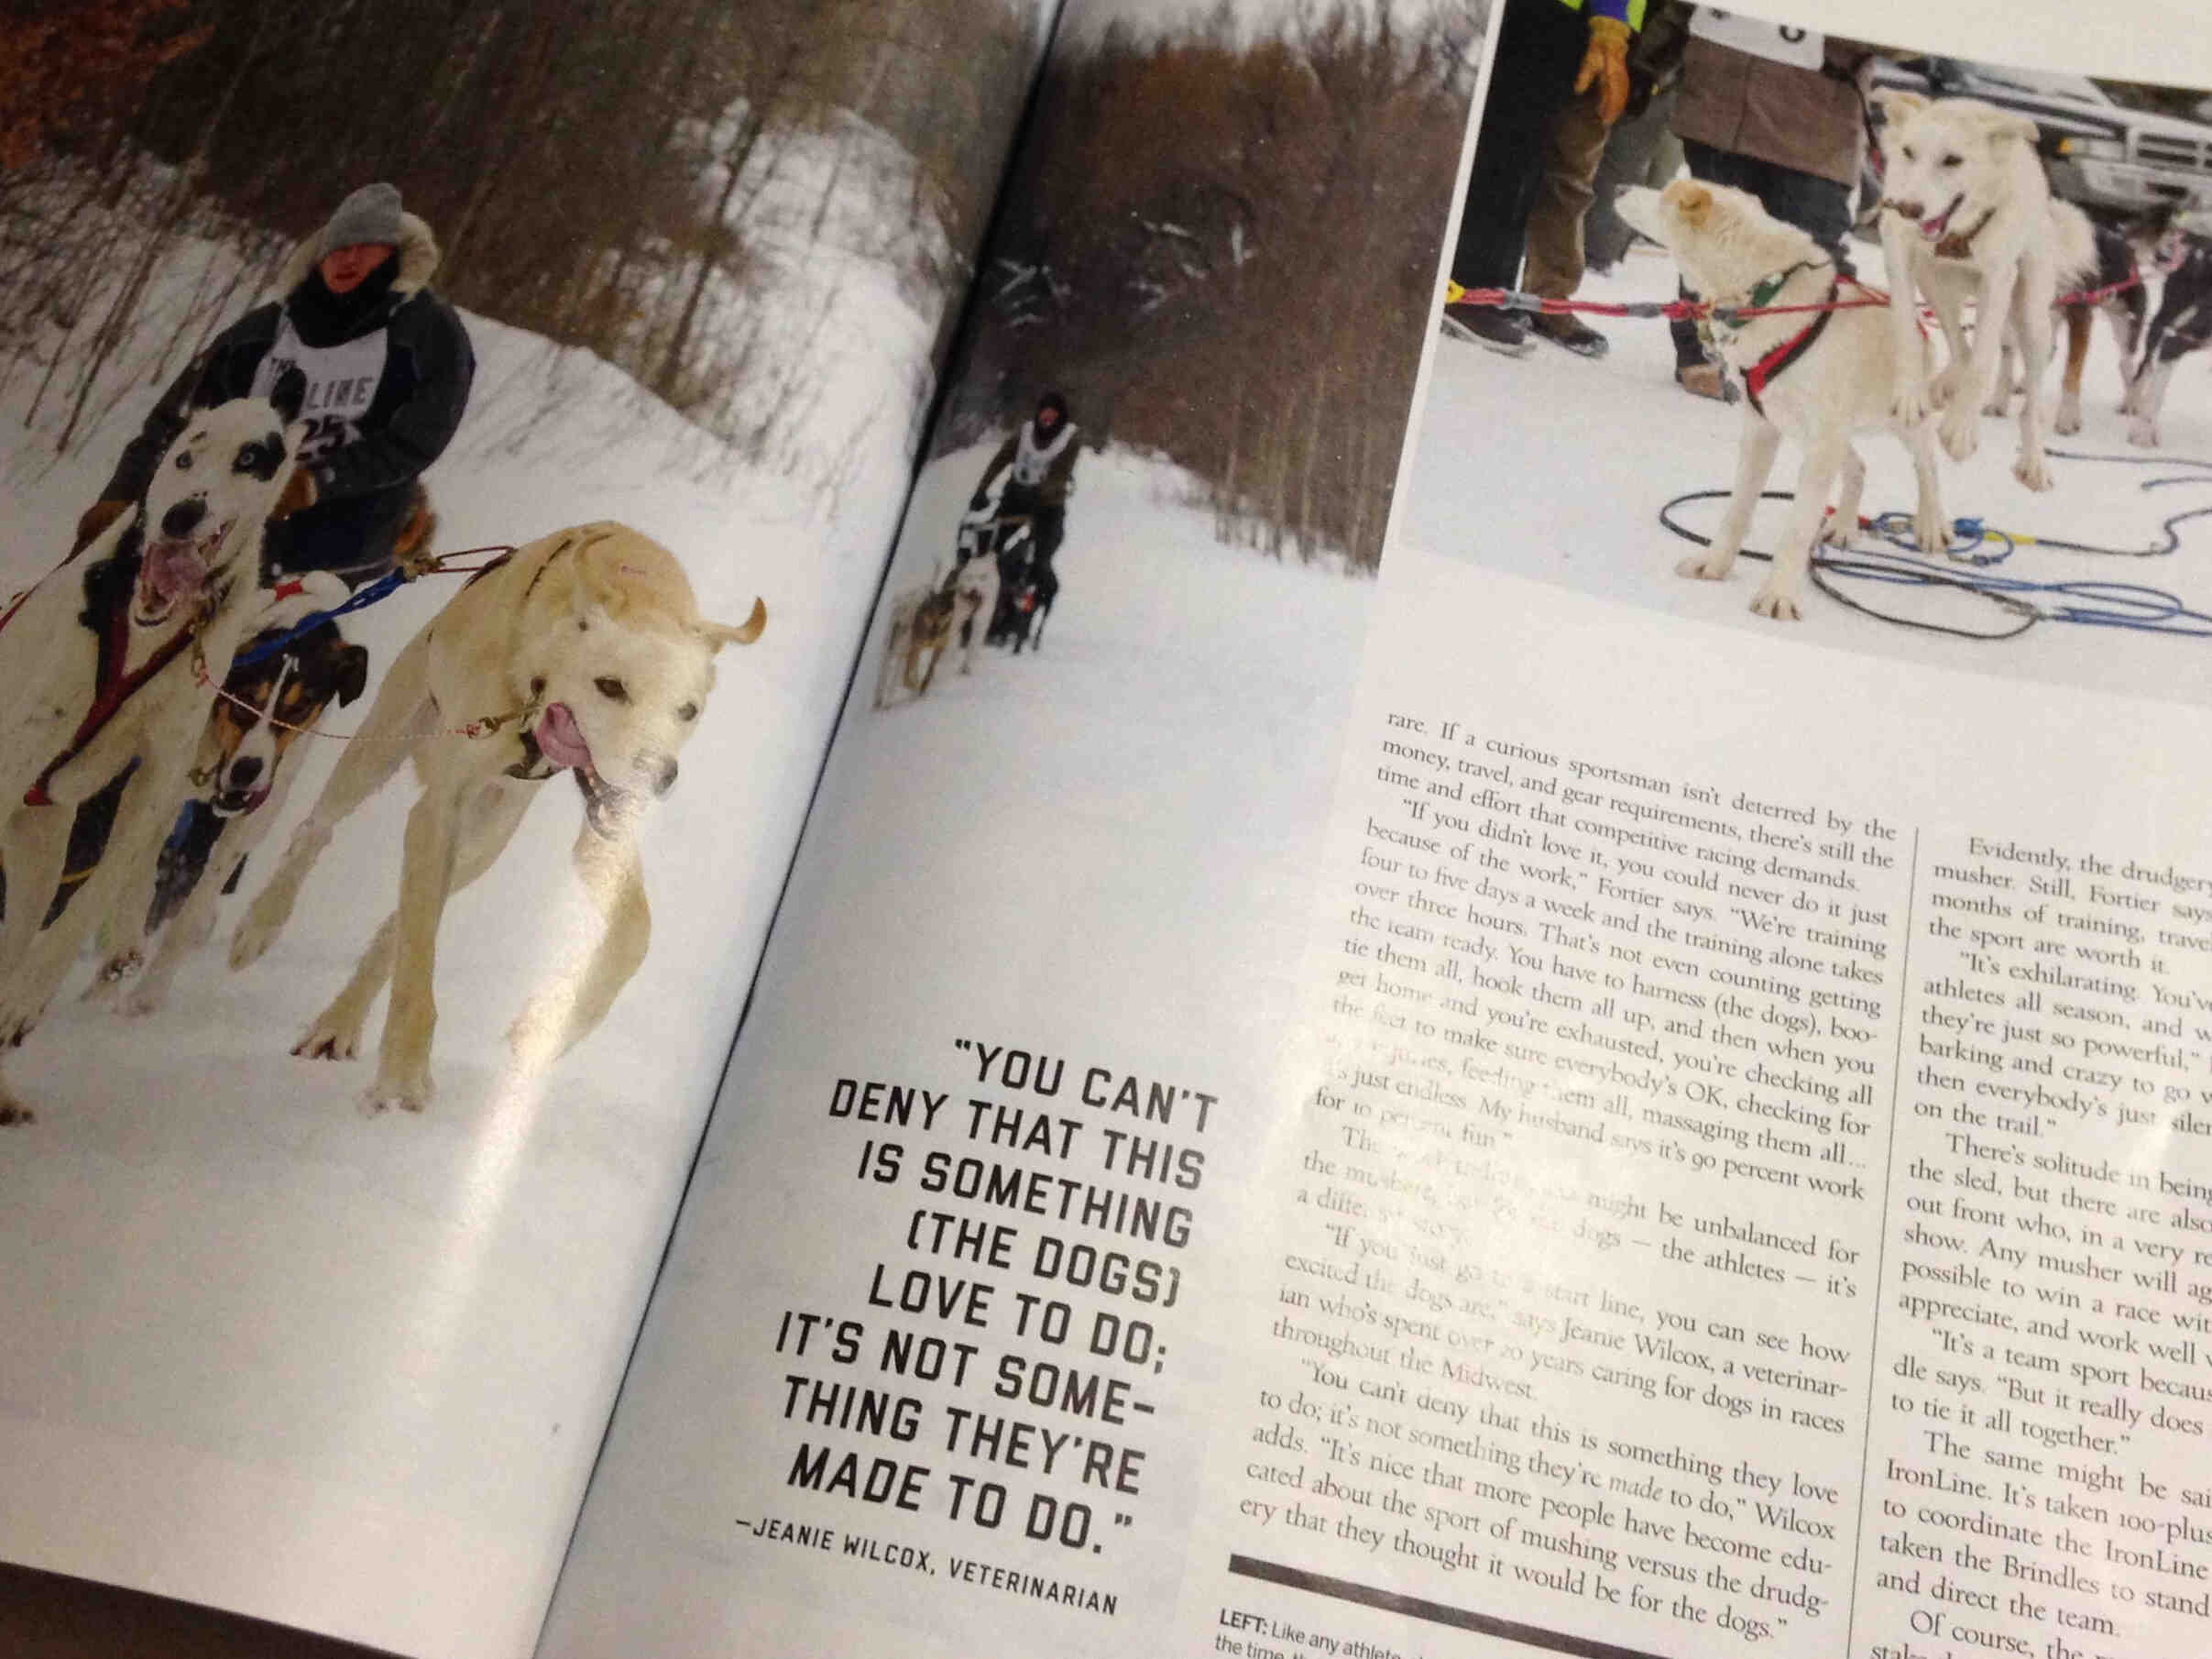 Magazine article featuring sled dogs and Jeanie Wilcox quote